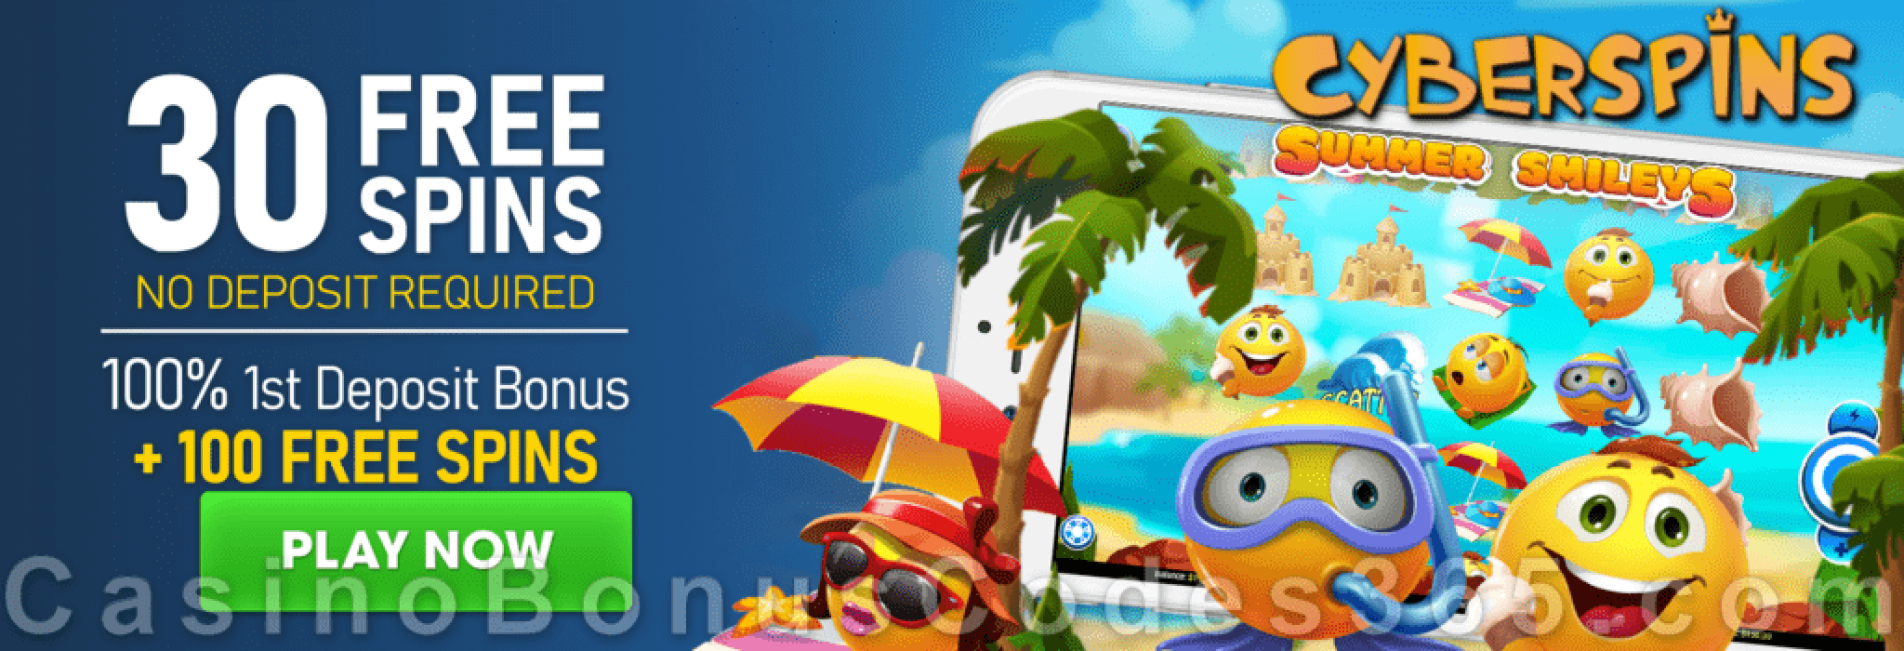 CyberSpins 30 FREE Spins on Mobilots Summer Smileys and 100% Match Bonus plus 100 FREE Spins Welcome Package